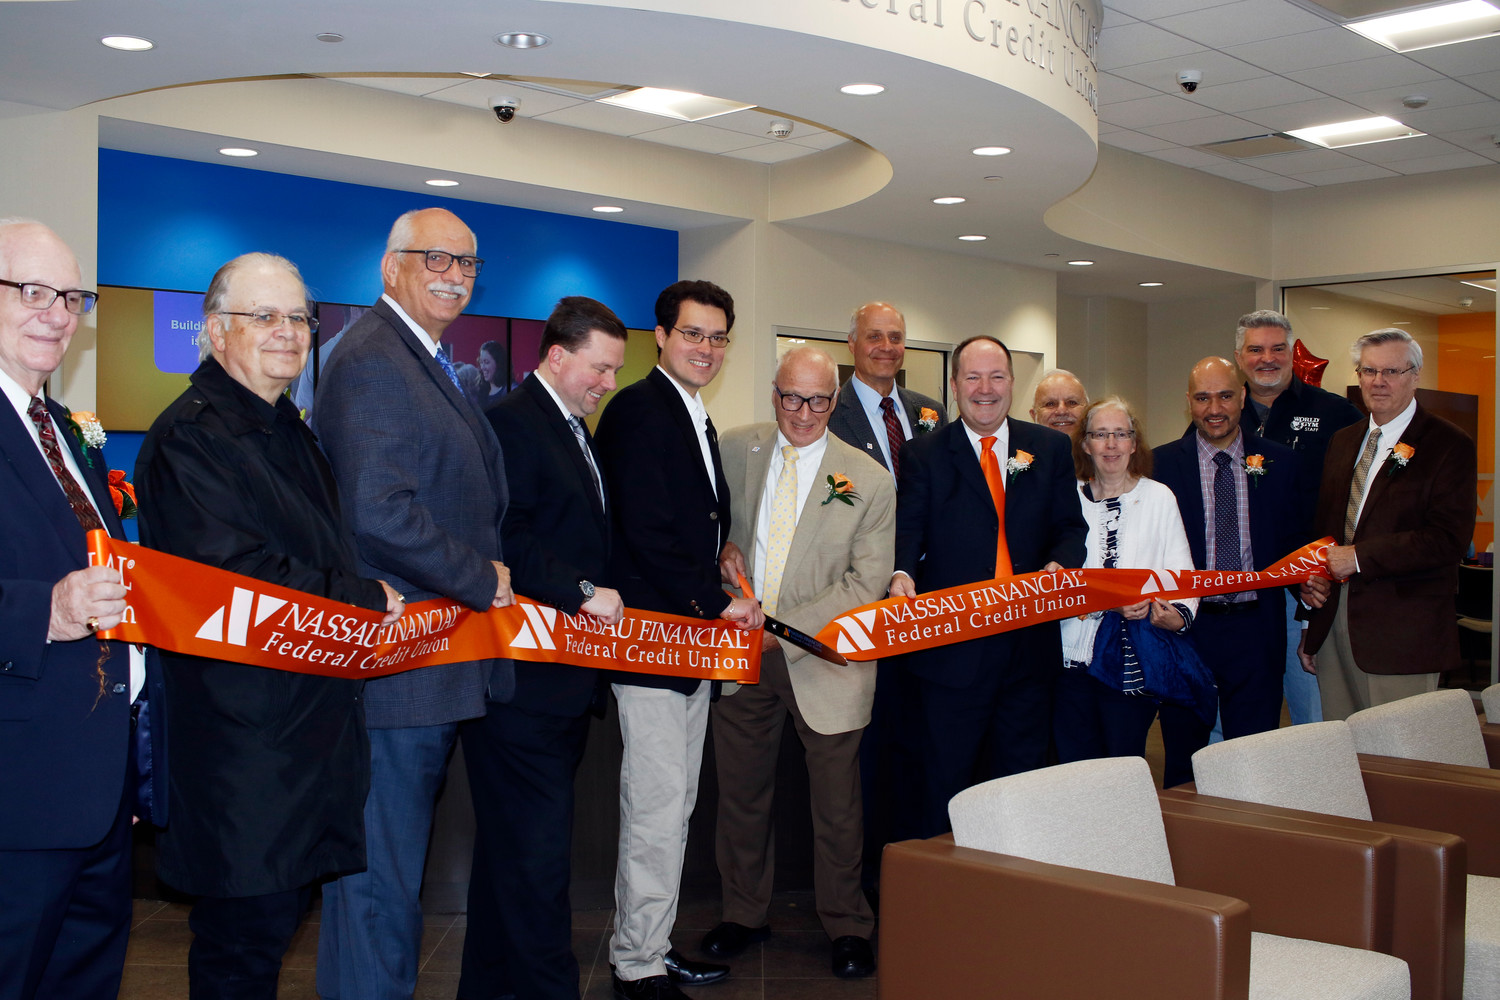 The NFFCU celebrated its grand opening in a new location in East Meadow on May 19 with a ribbon cutting hosted by the East Meadow Chamber of Commerce.